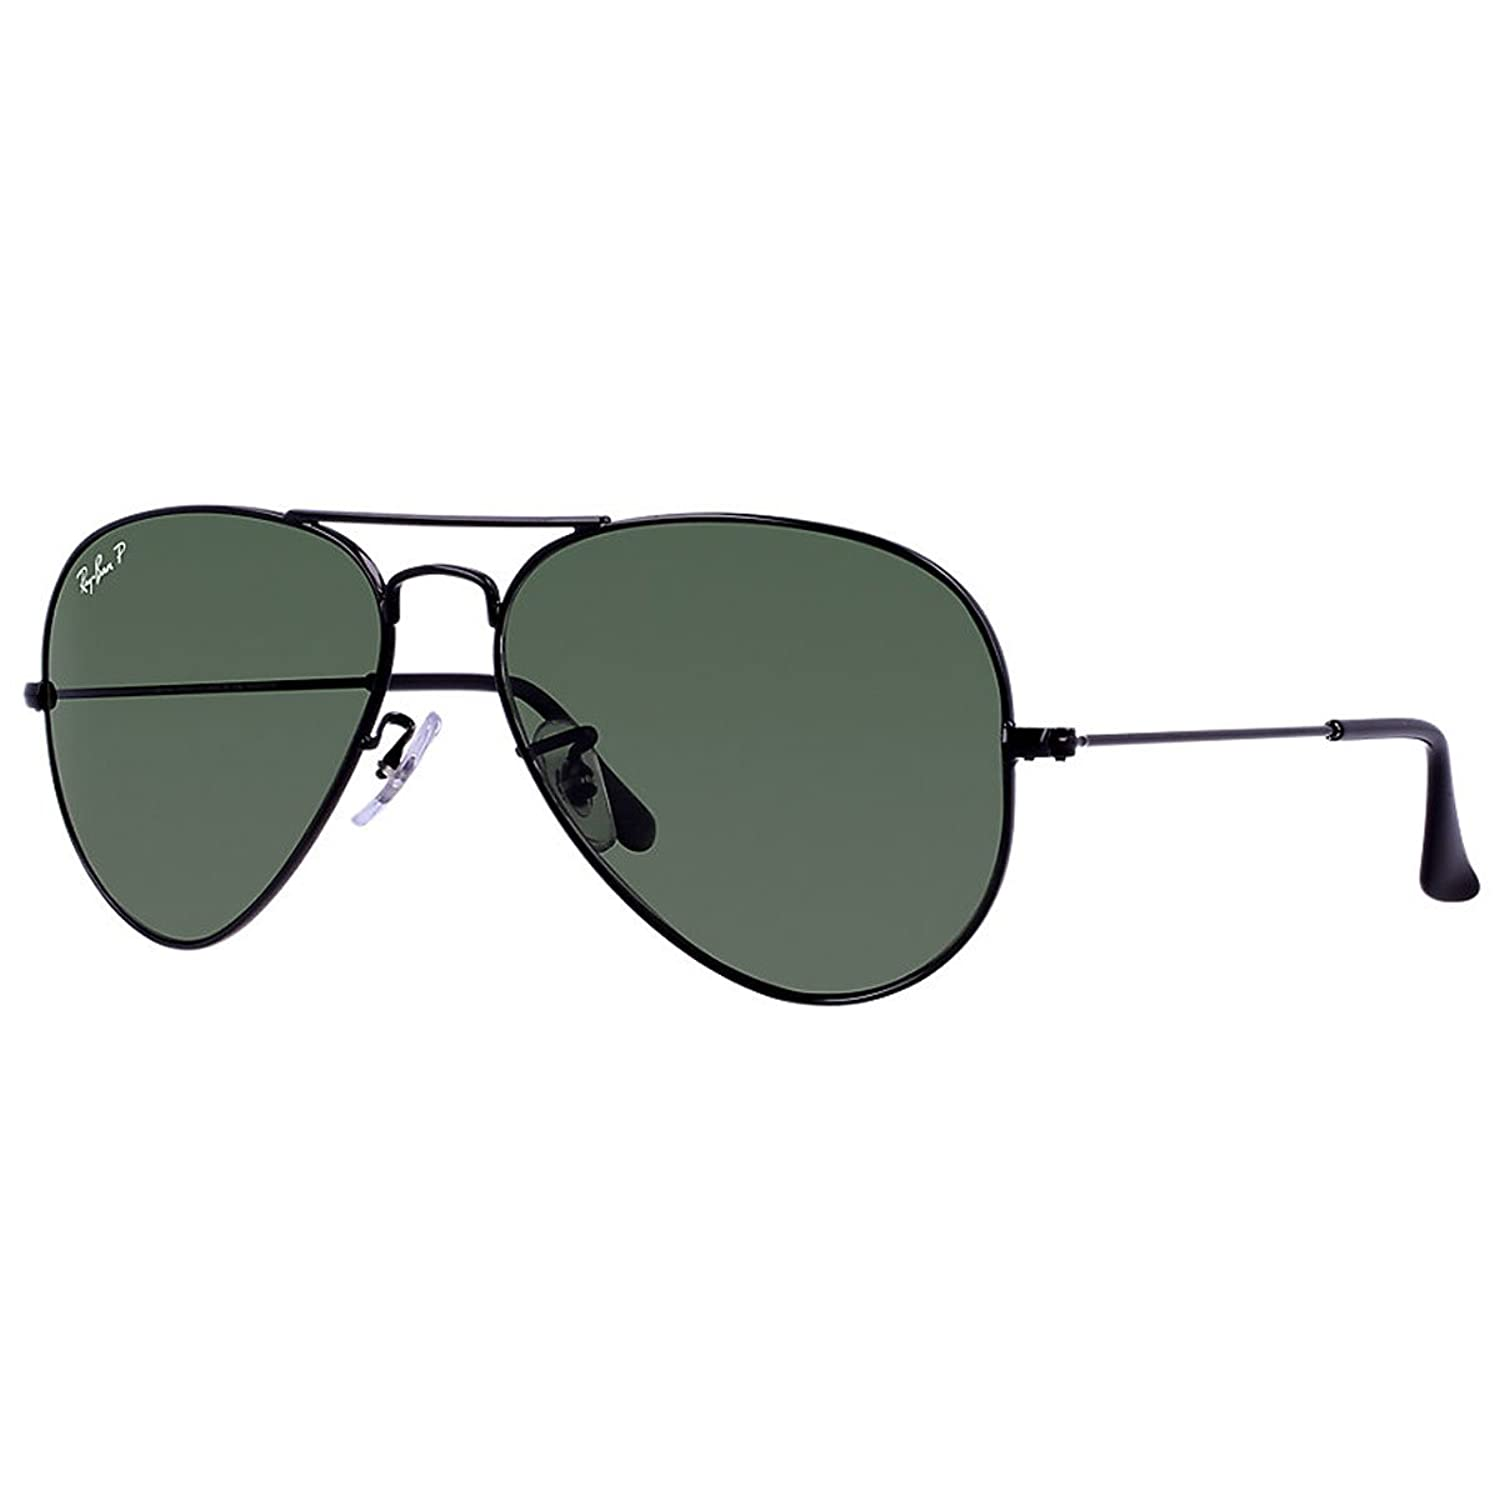 ray ban aviator 58  Ray-Ban 0rb3025 Polarized Aviator Sunglasses, Black, 58 mm: Amazon ...